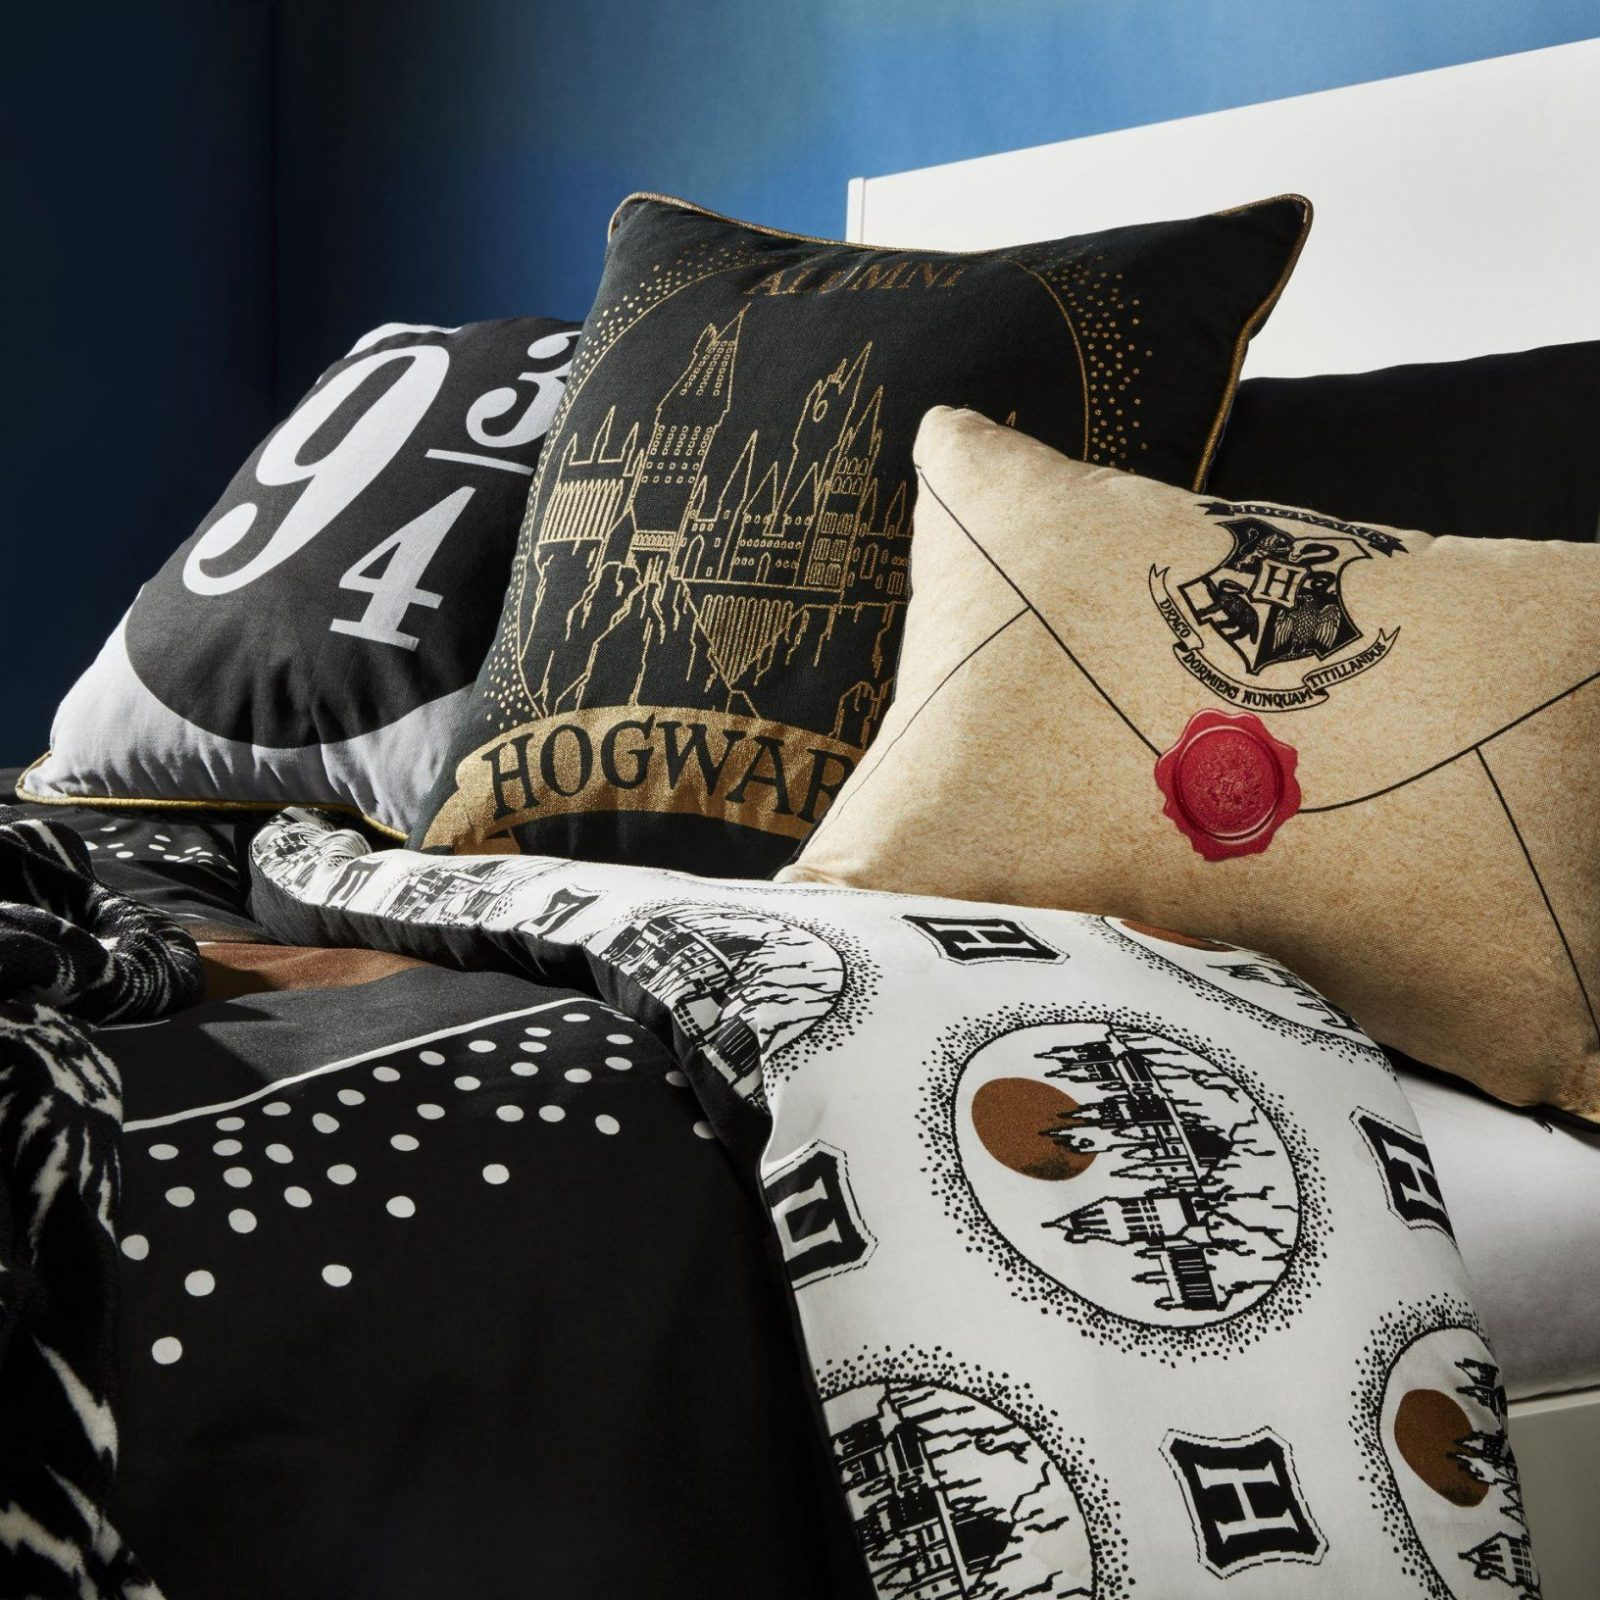 Harry Potter King Size Bedding Primark  Bedding Designs von Harry Potter Bettwäsche Primark Bild